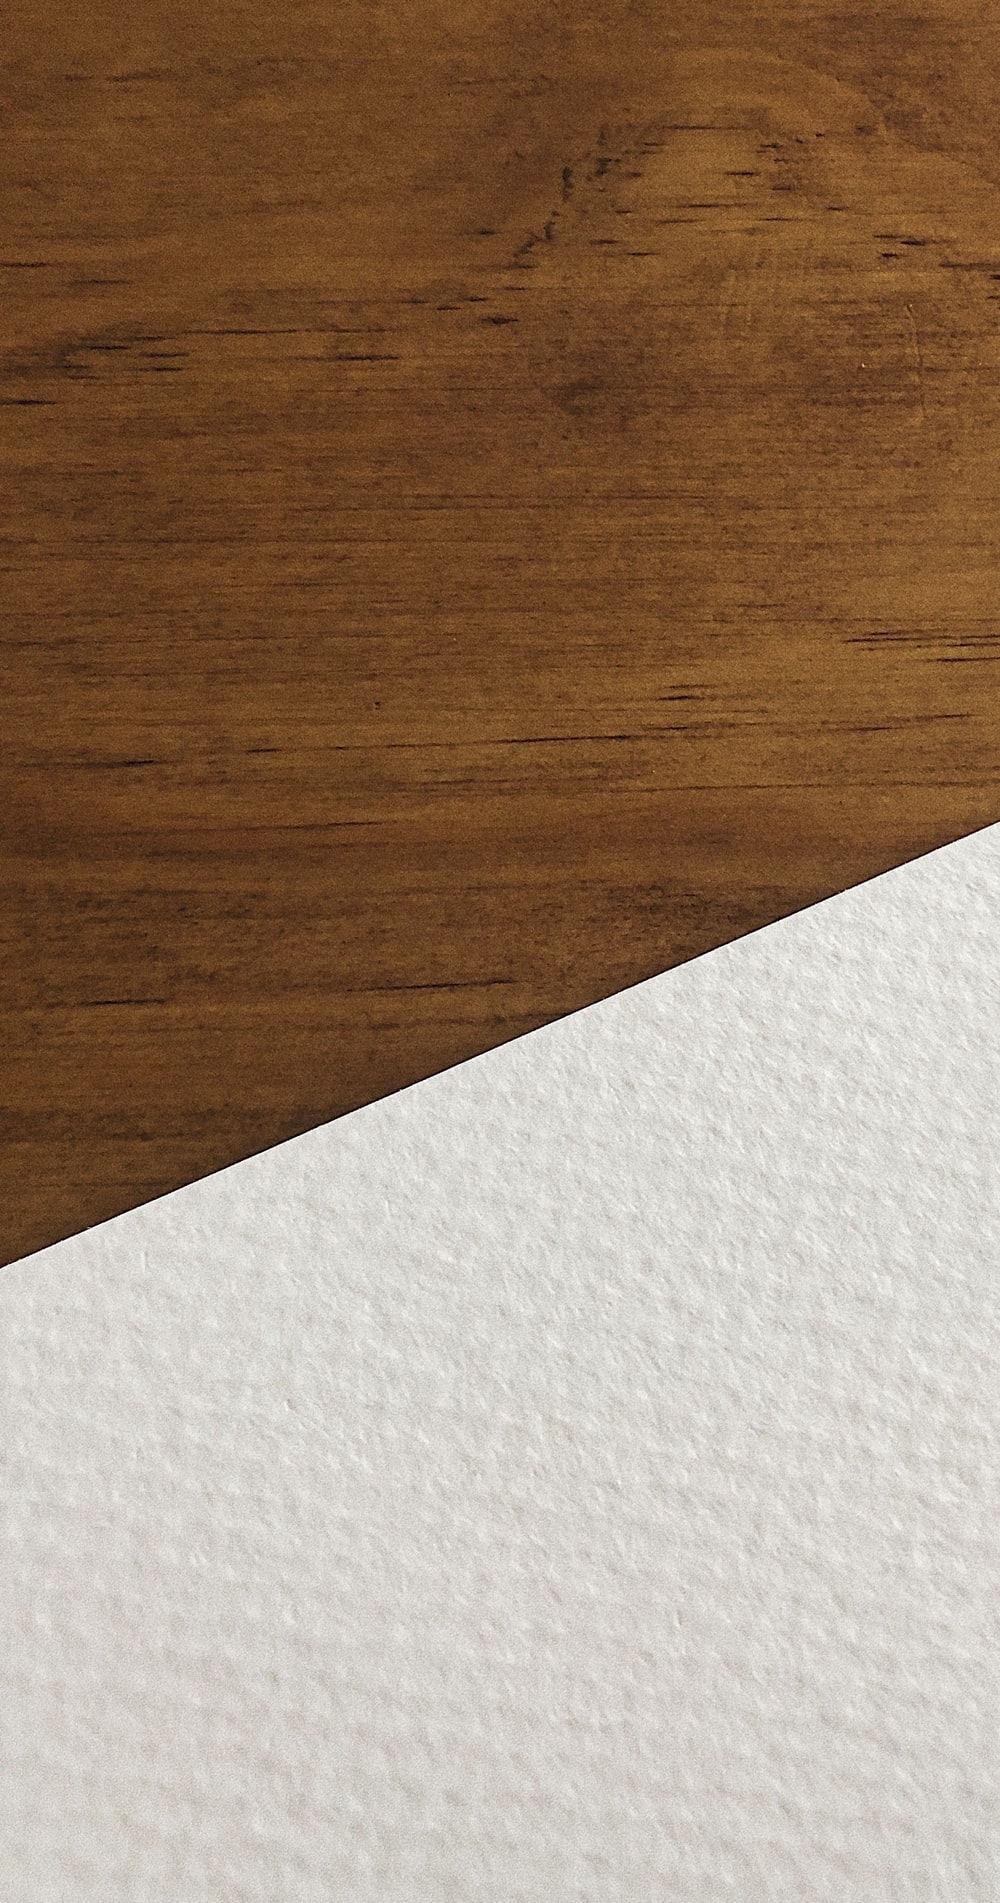 white paper on brown wooden surface